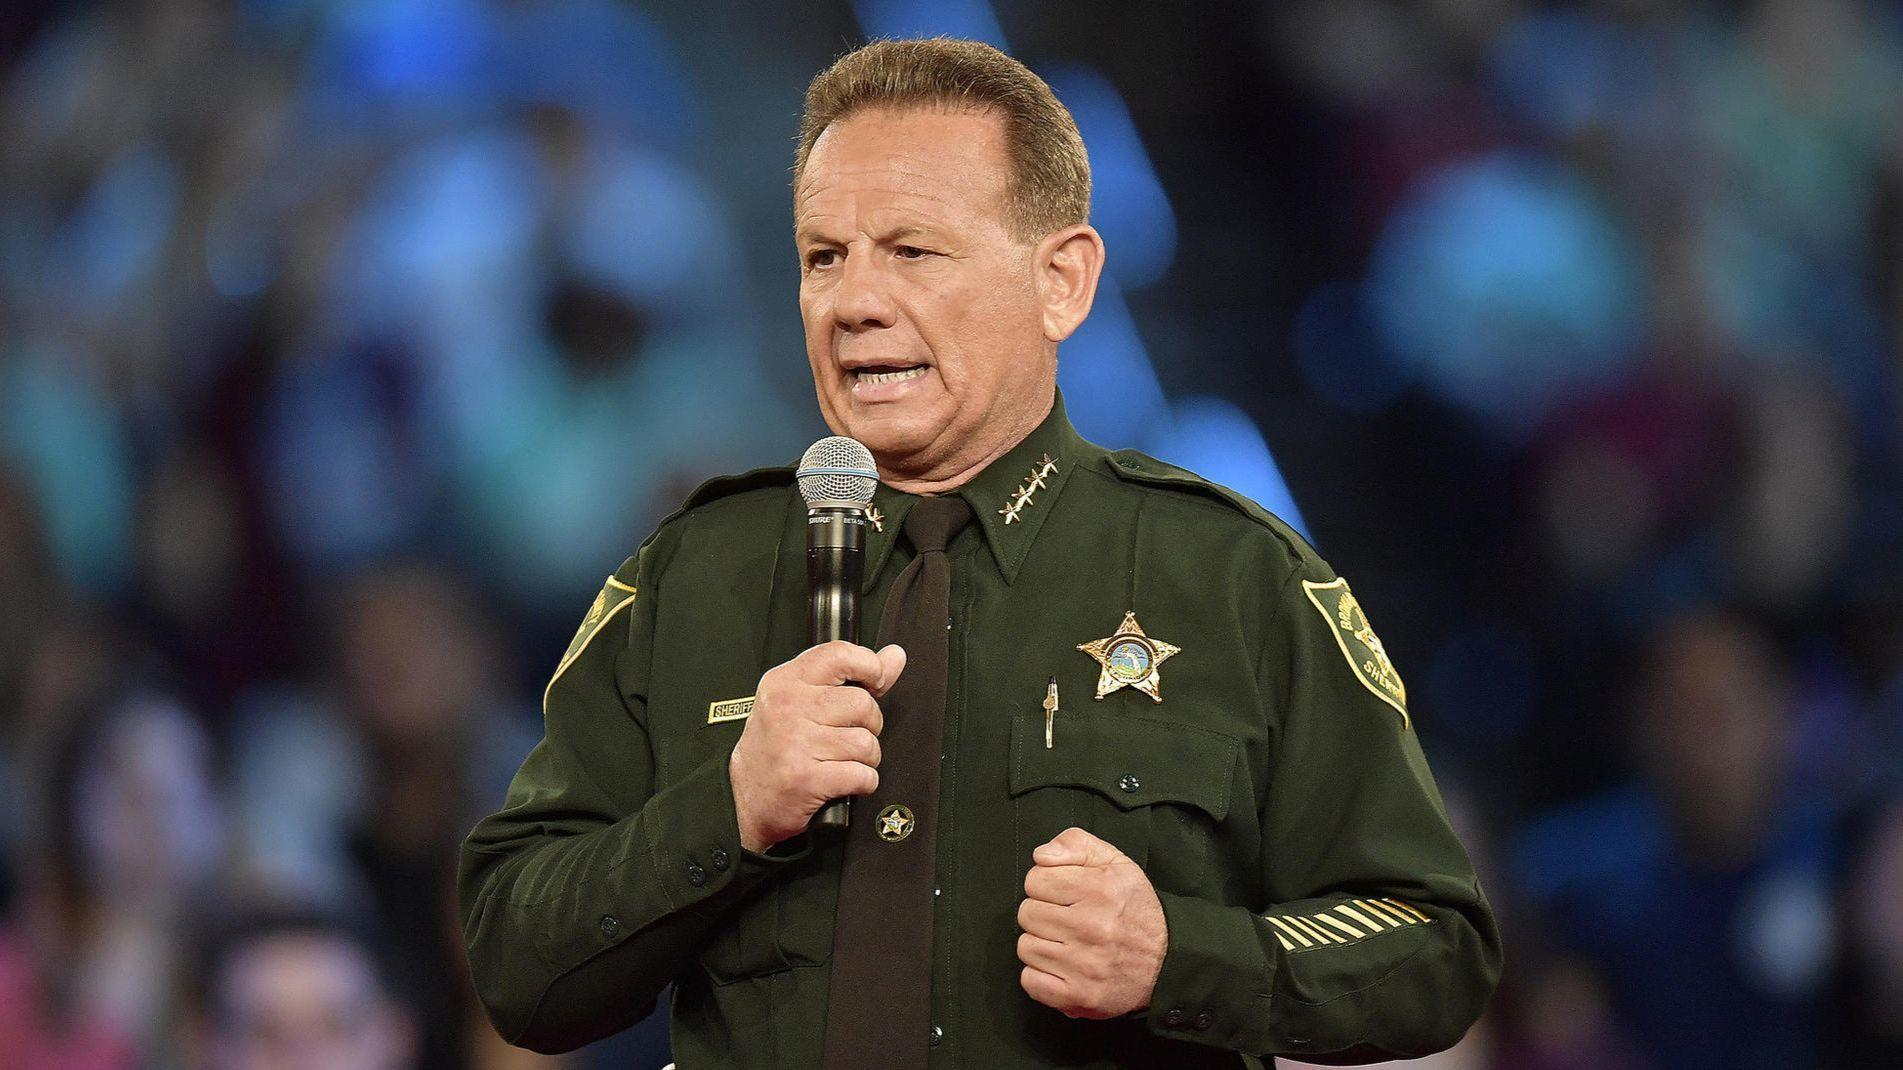 Sheriff Scott Israel removed over failures during Parkland shooting, replaced by Gregory Tony